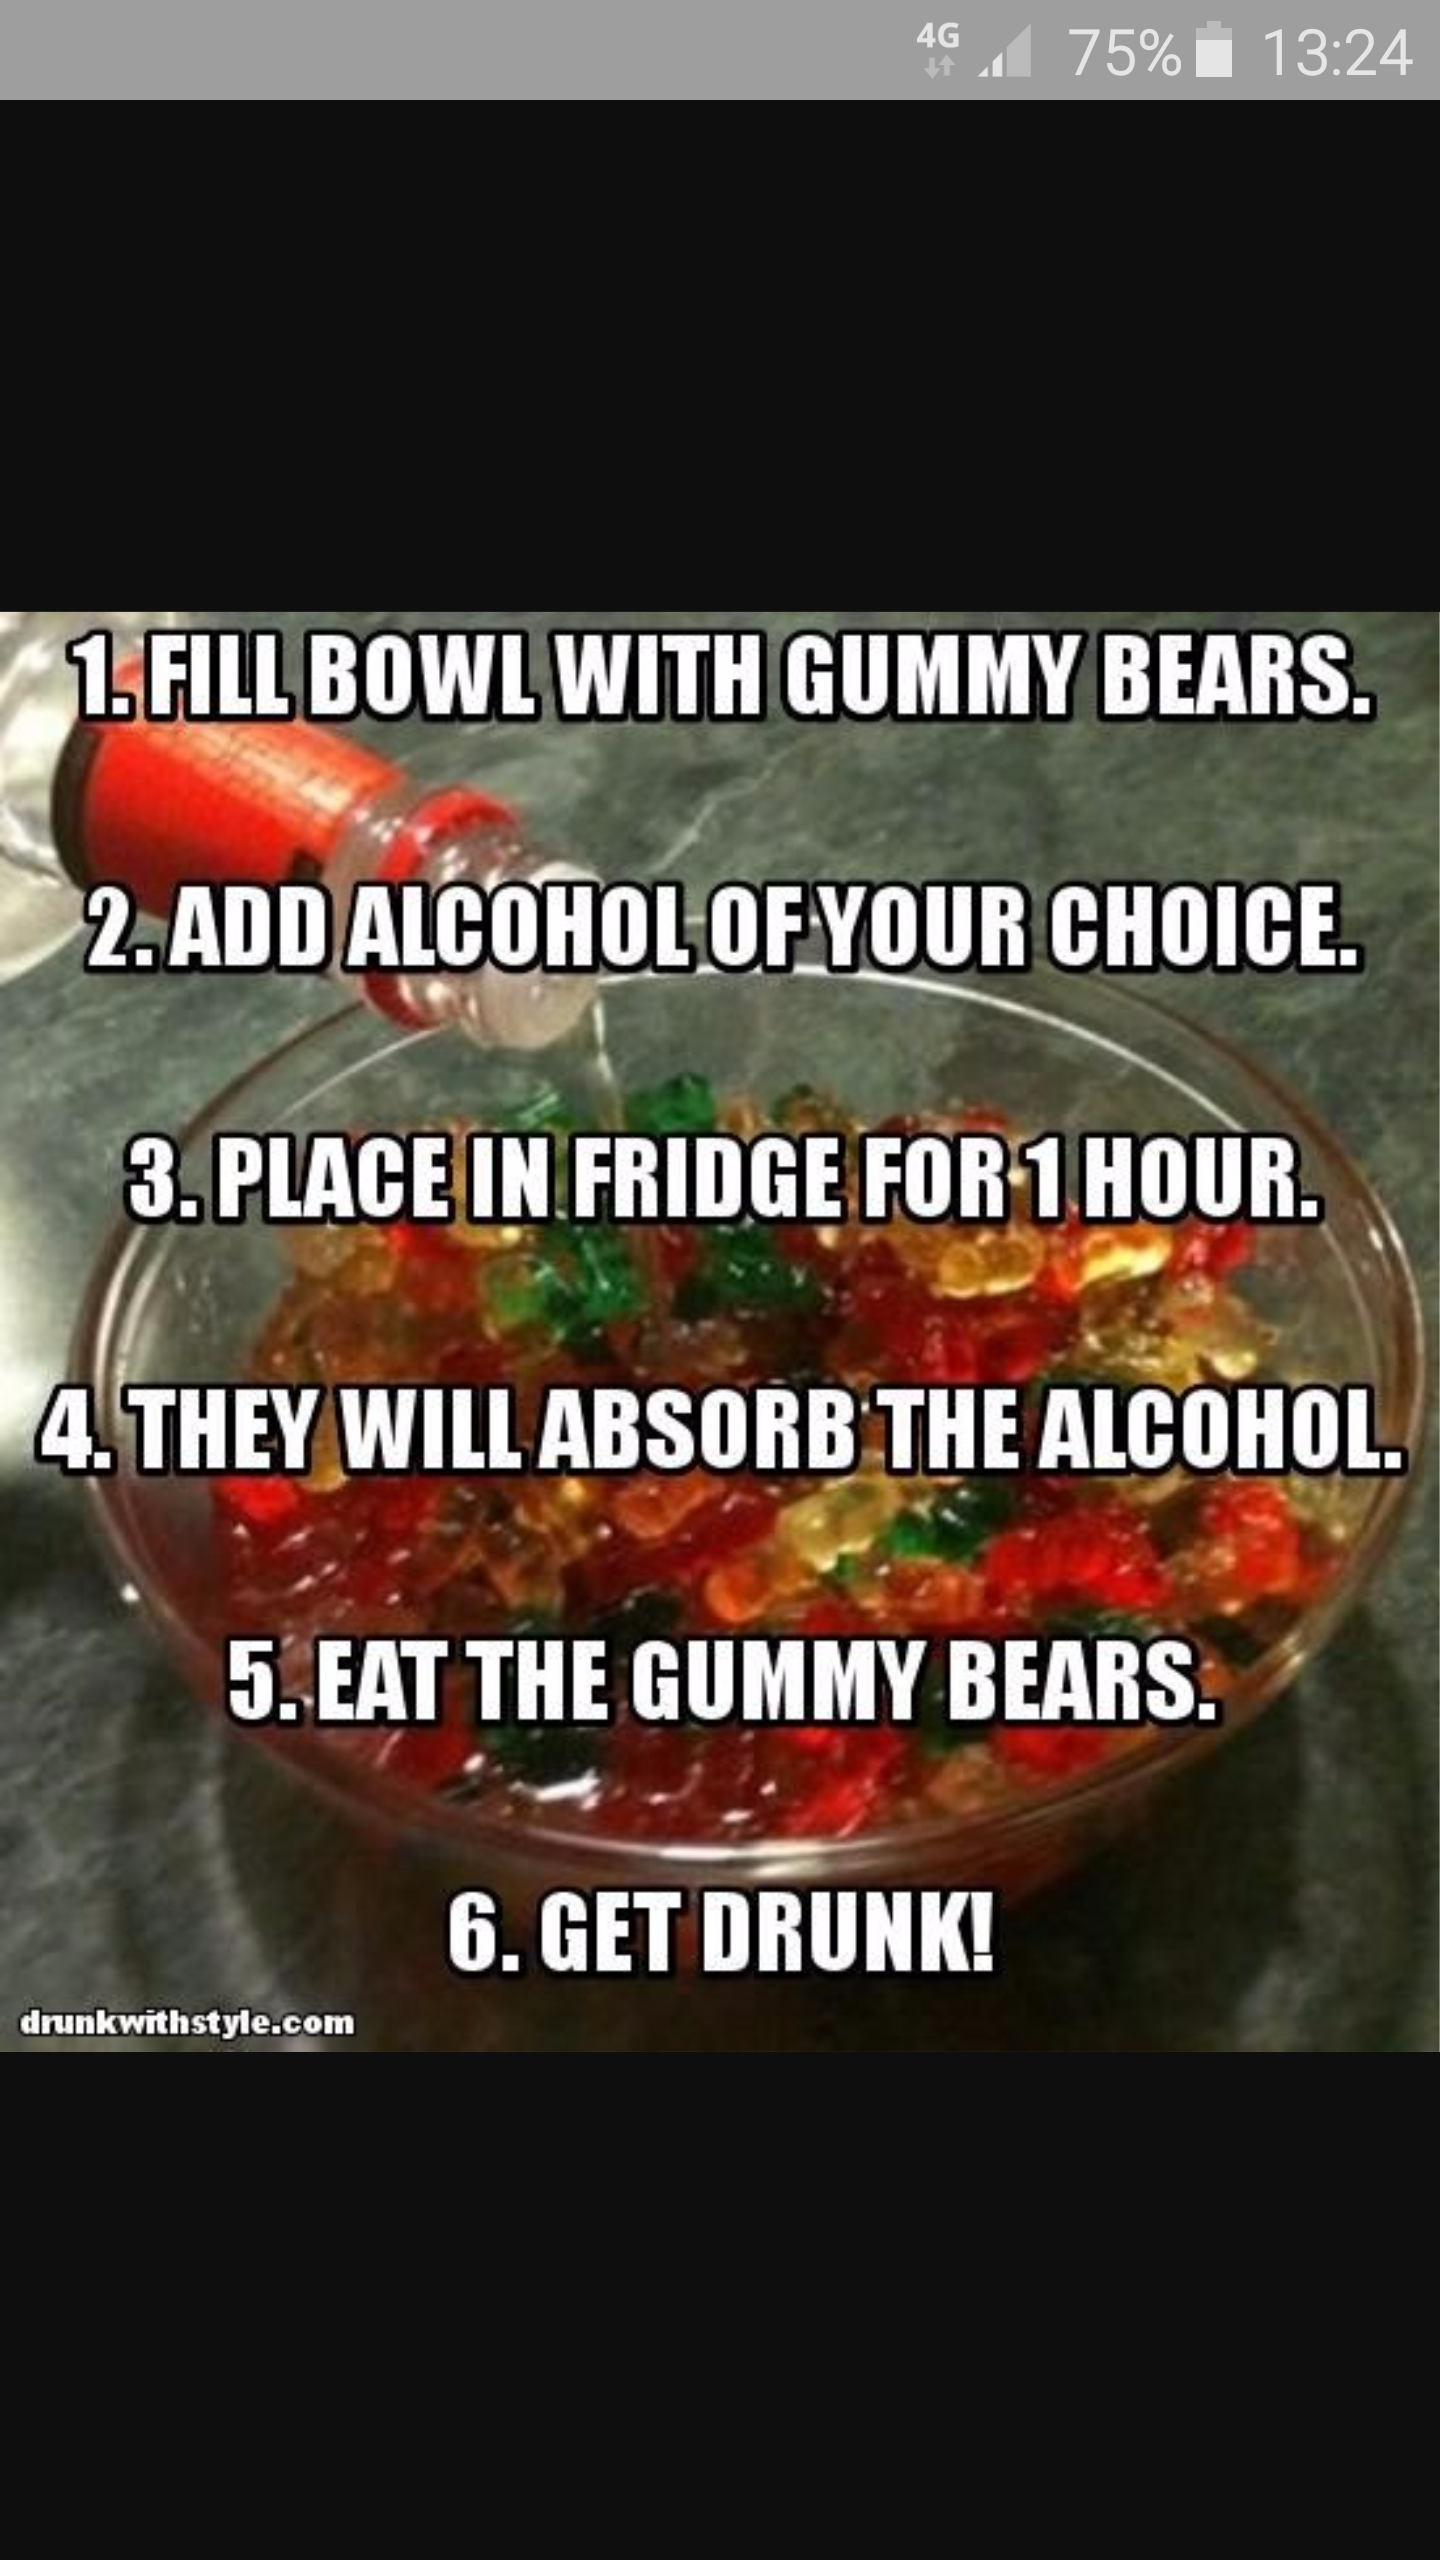 Vodka bears!